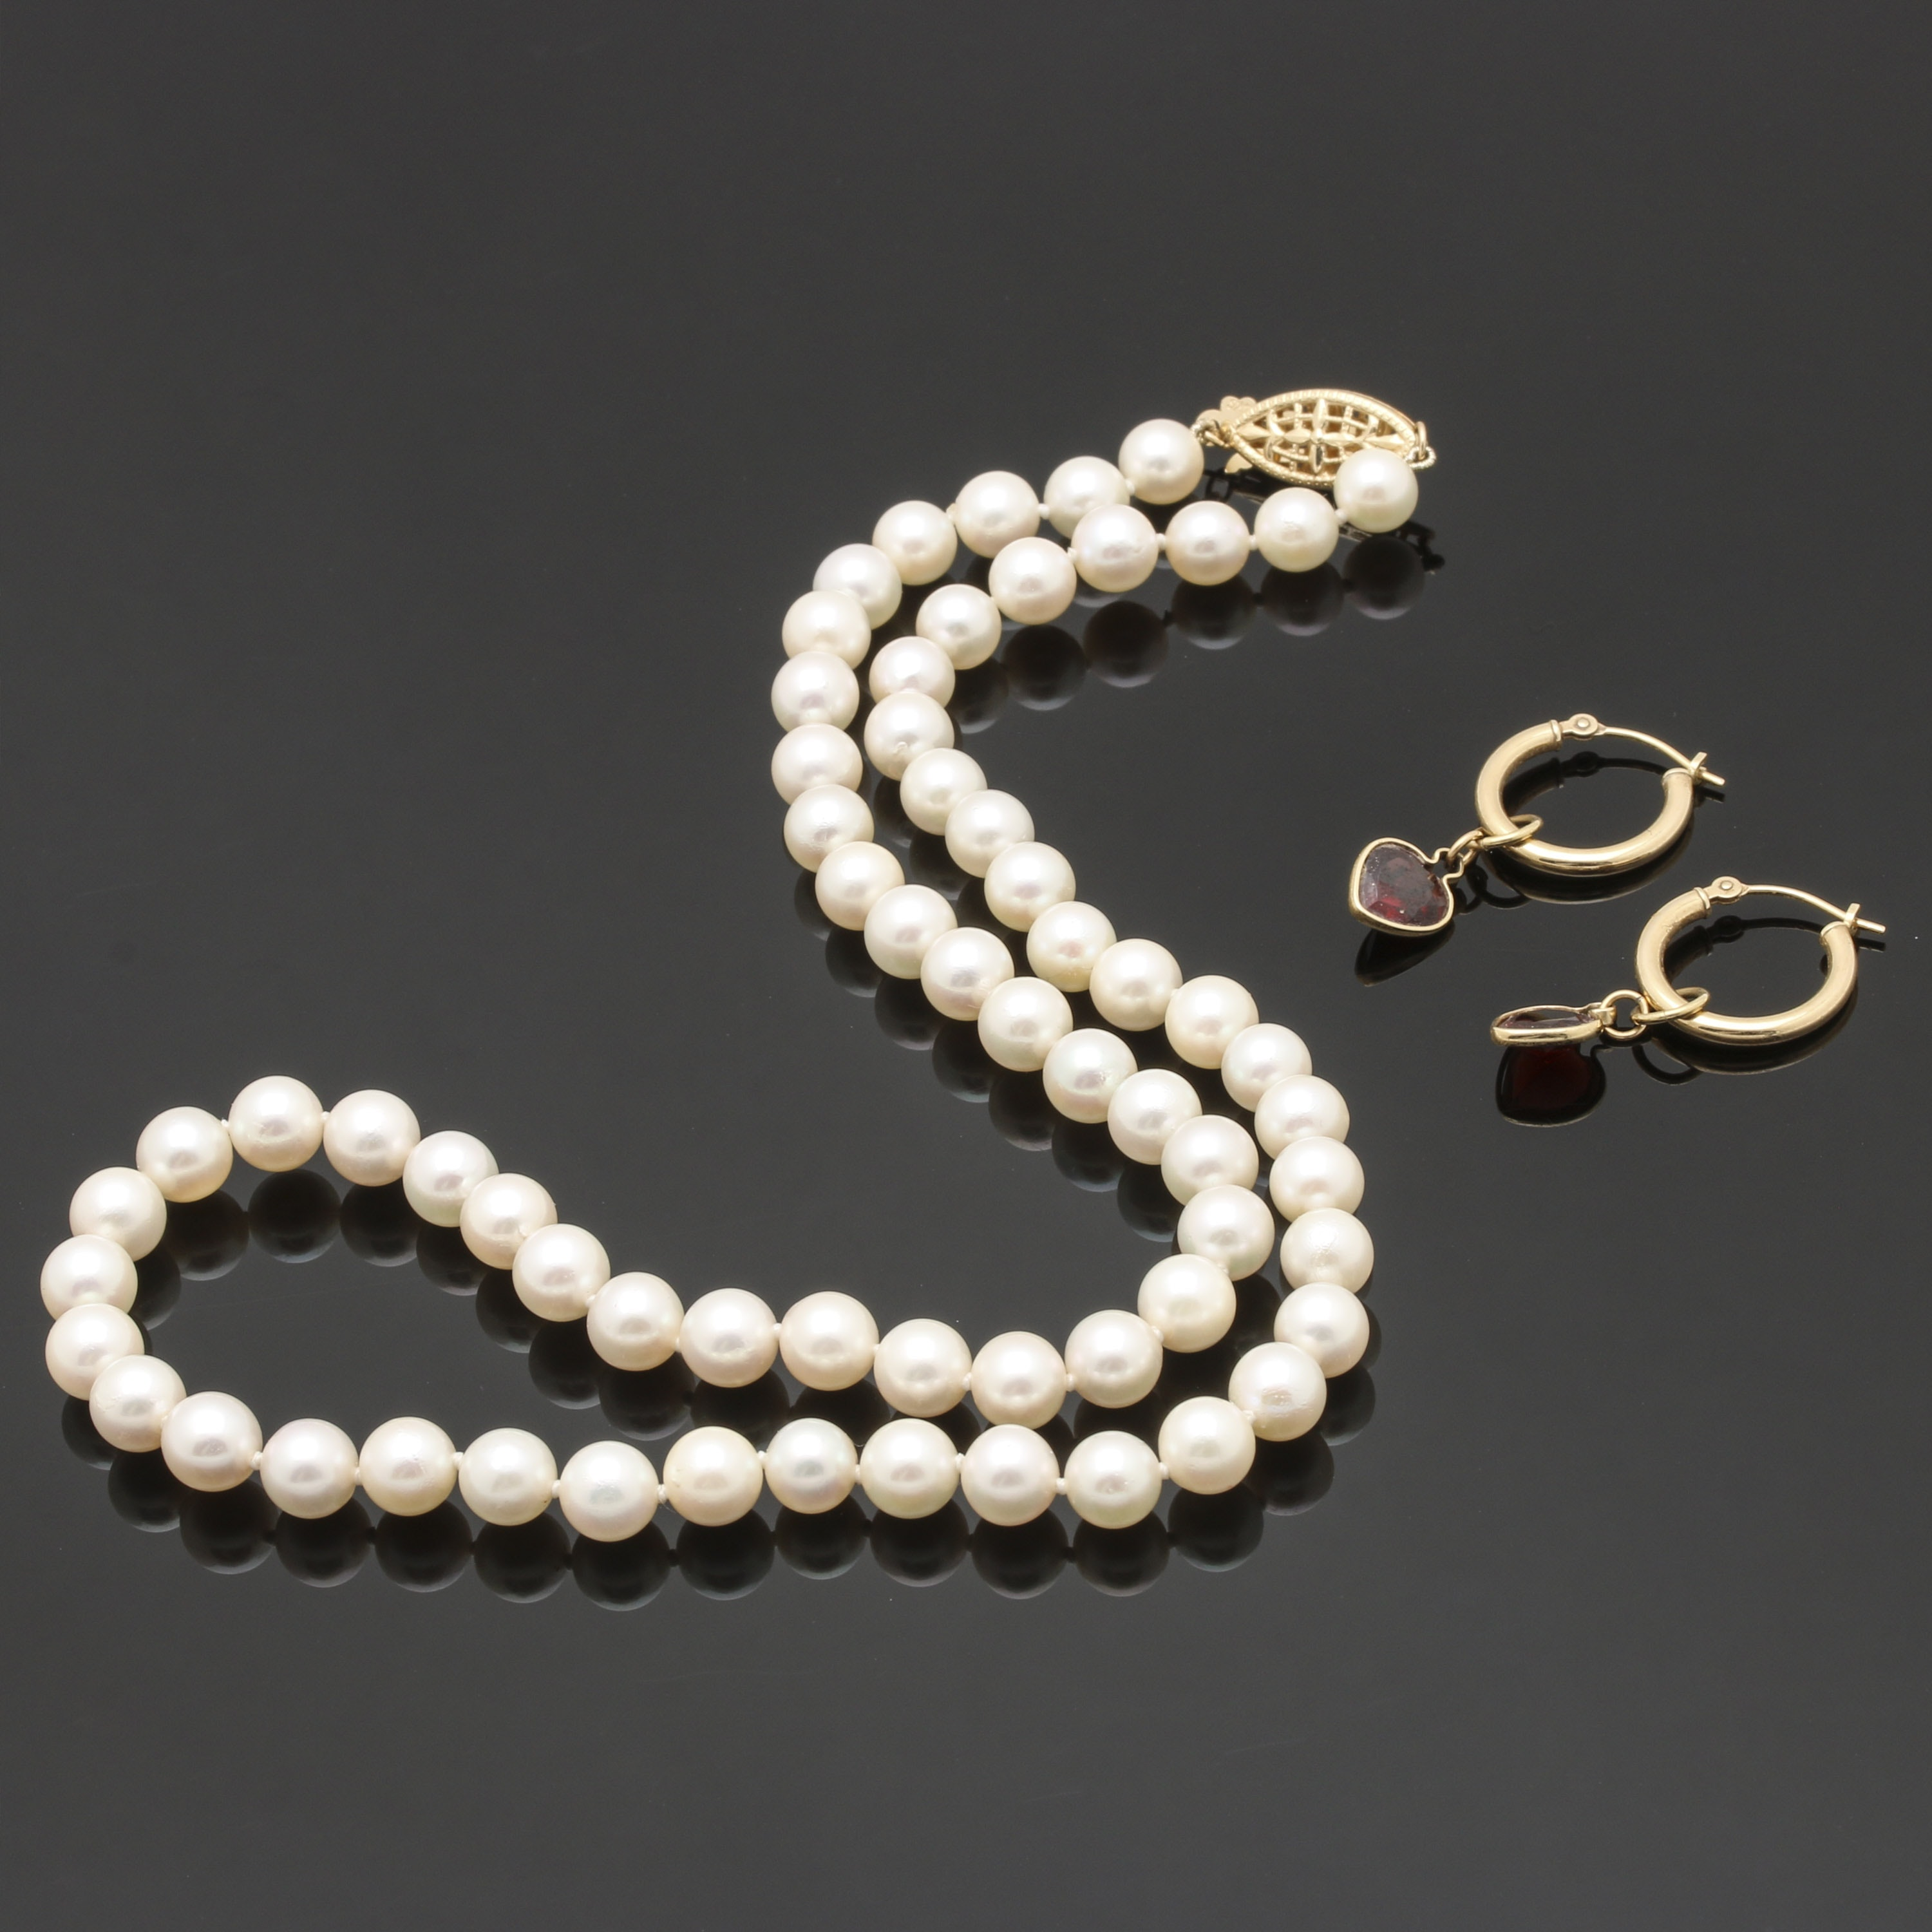 Selection of 14K Yellow Gold Cultured Pearl Necklace and Garnet Heart Earrings